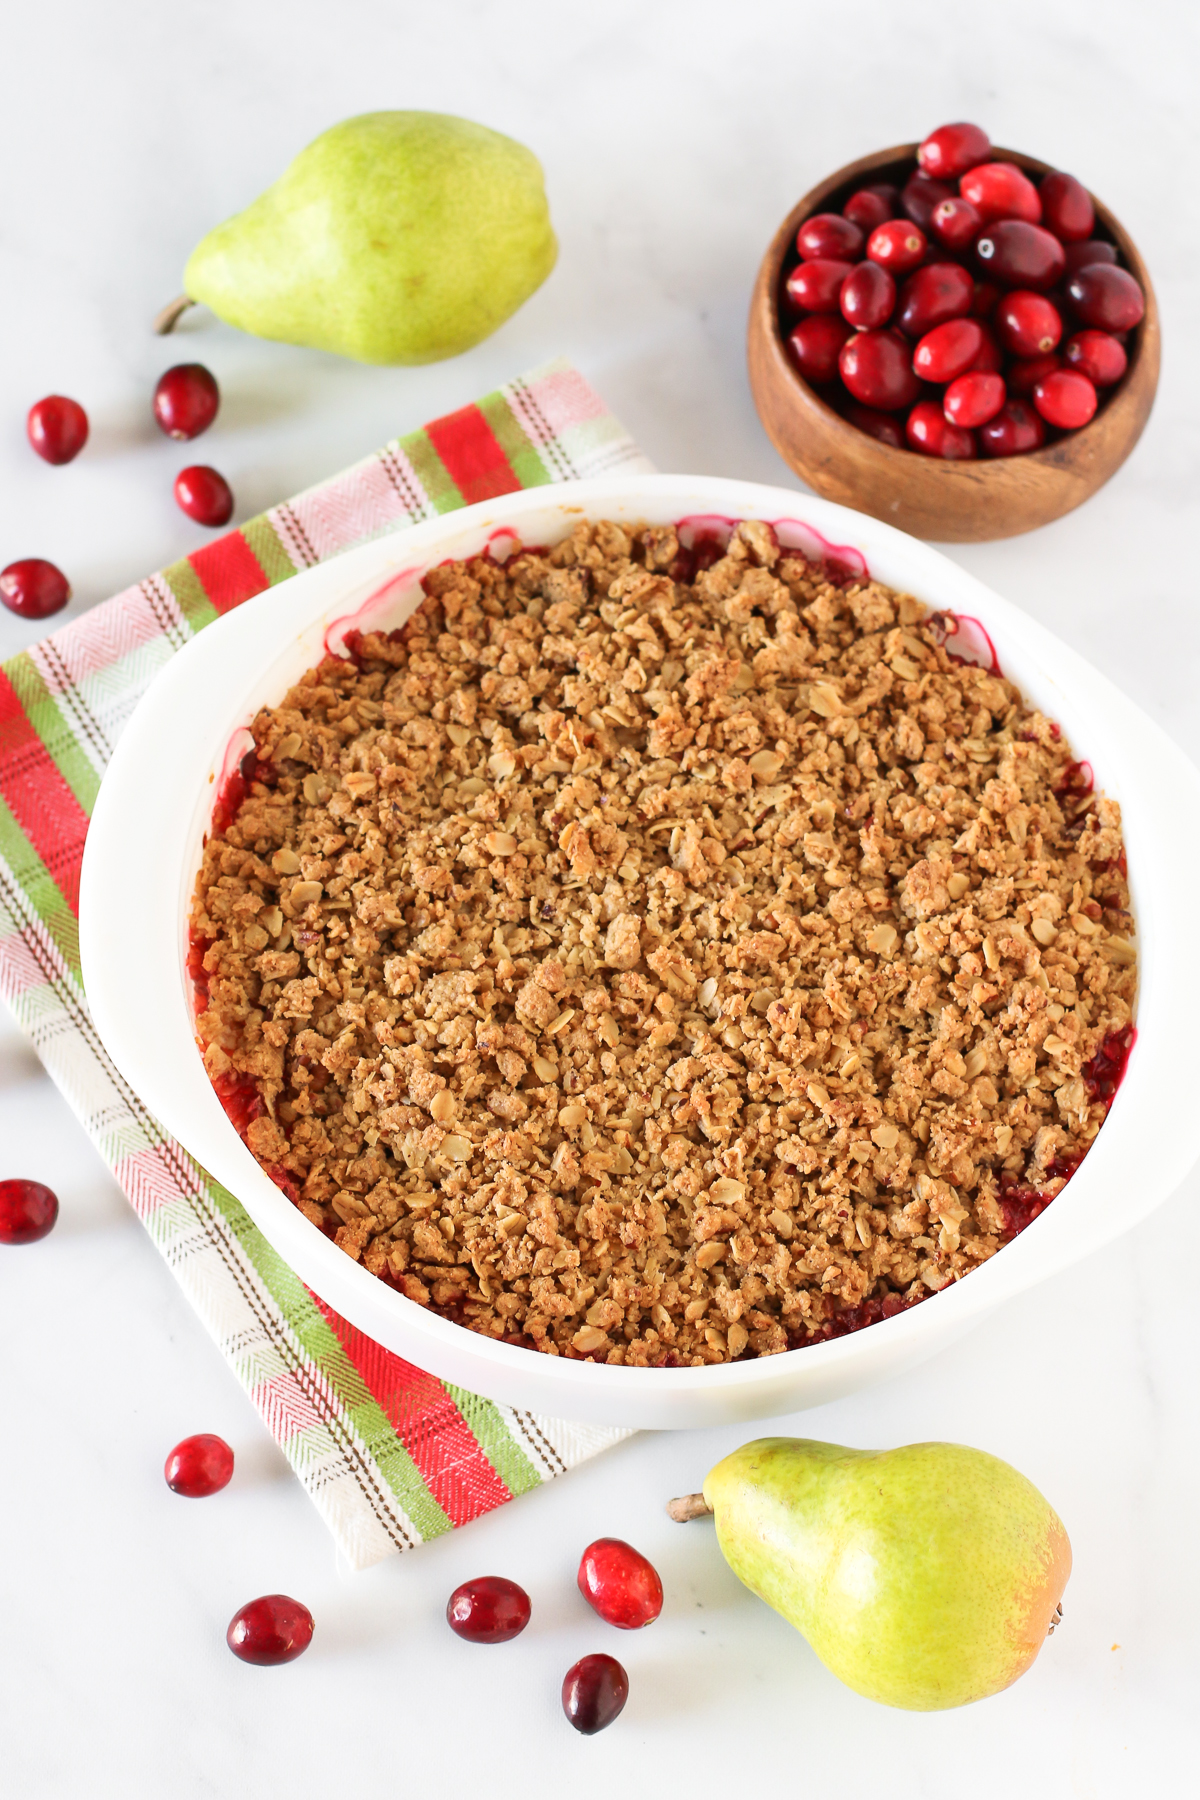 Gluten Free Vegan Cranberry Pear Crisp. Tender pears, tart cranberries and a golden oat-pecan crumb topping. A rustic, easy holiday dessert!